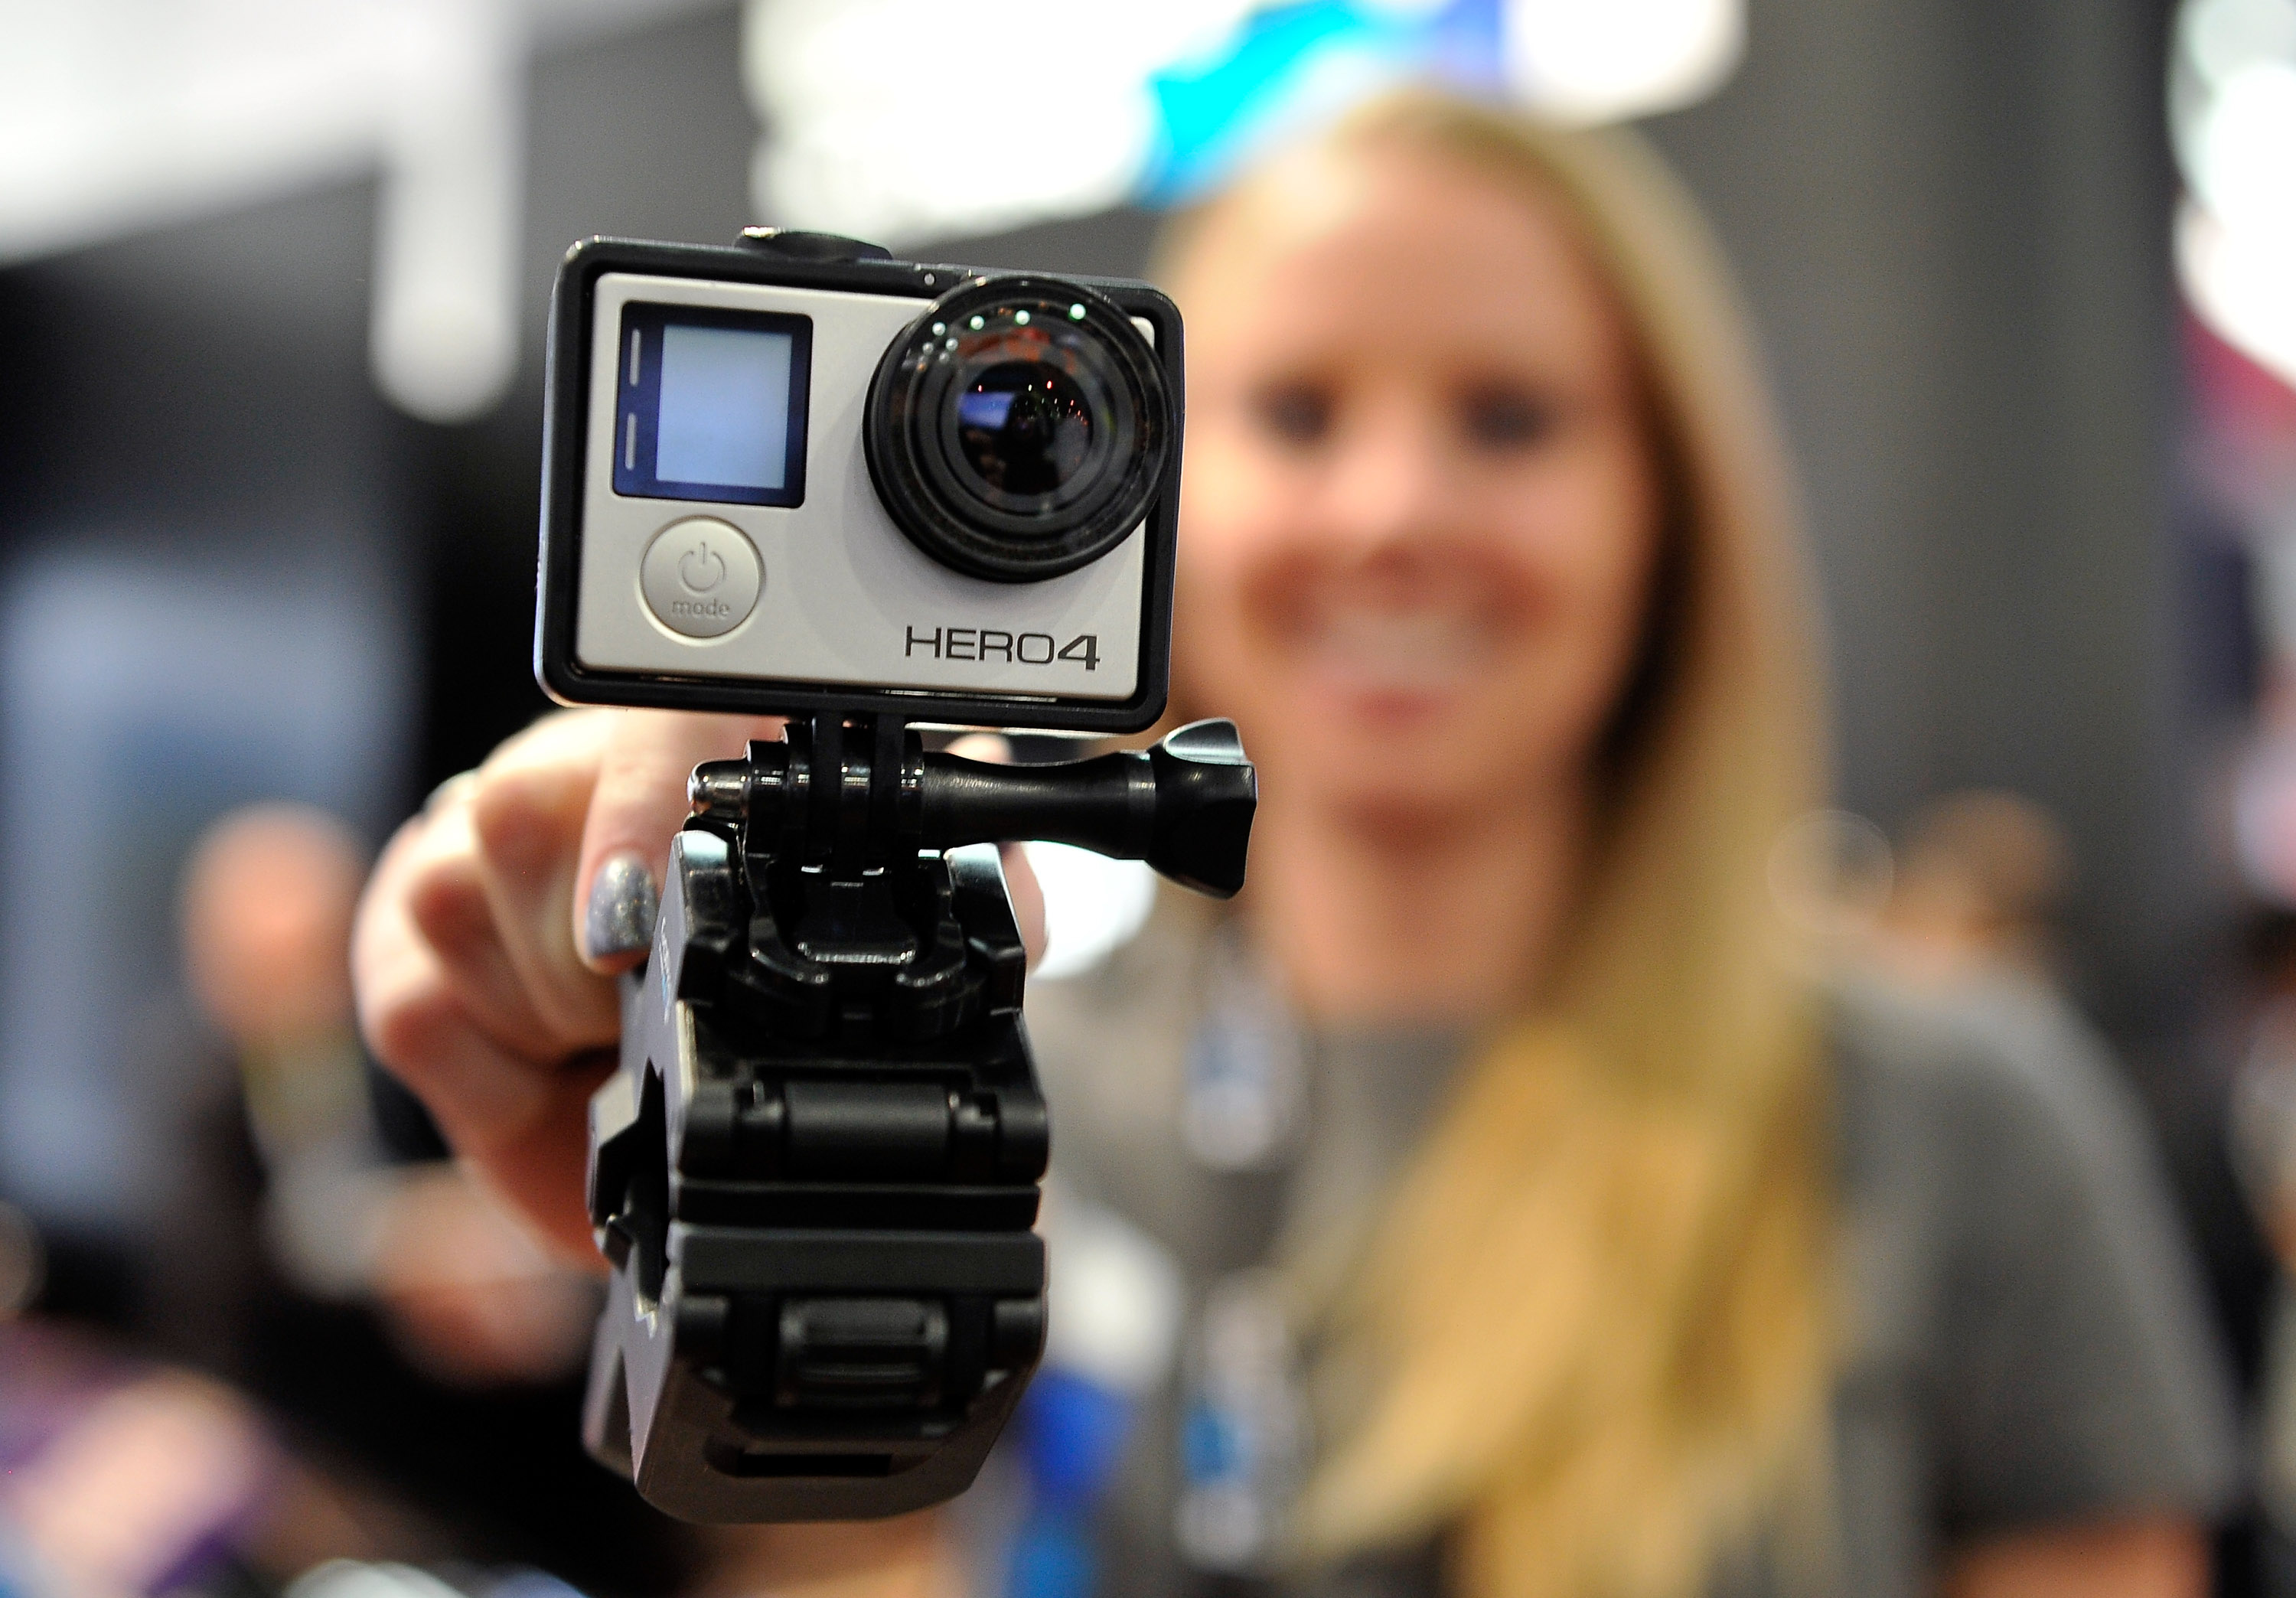 A GoPro Hero 4 camera is displayed at the 2015 International CES at the Las Vegas Convention Center on January 6, 2015 in Las Vegas, Nevada.